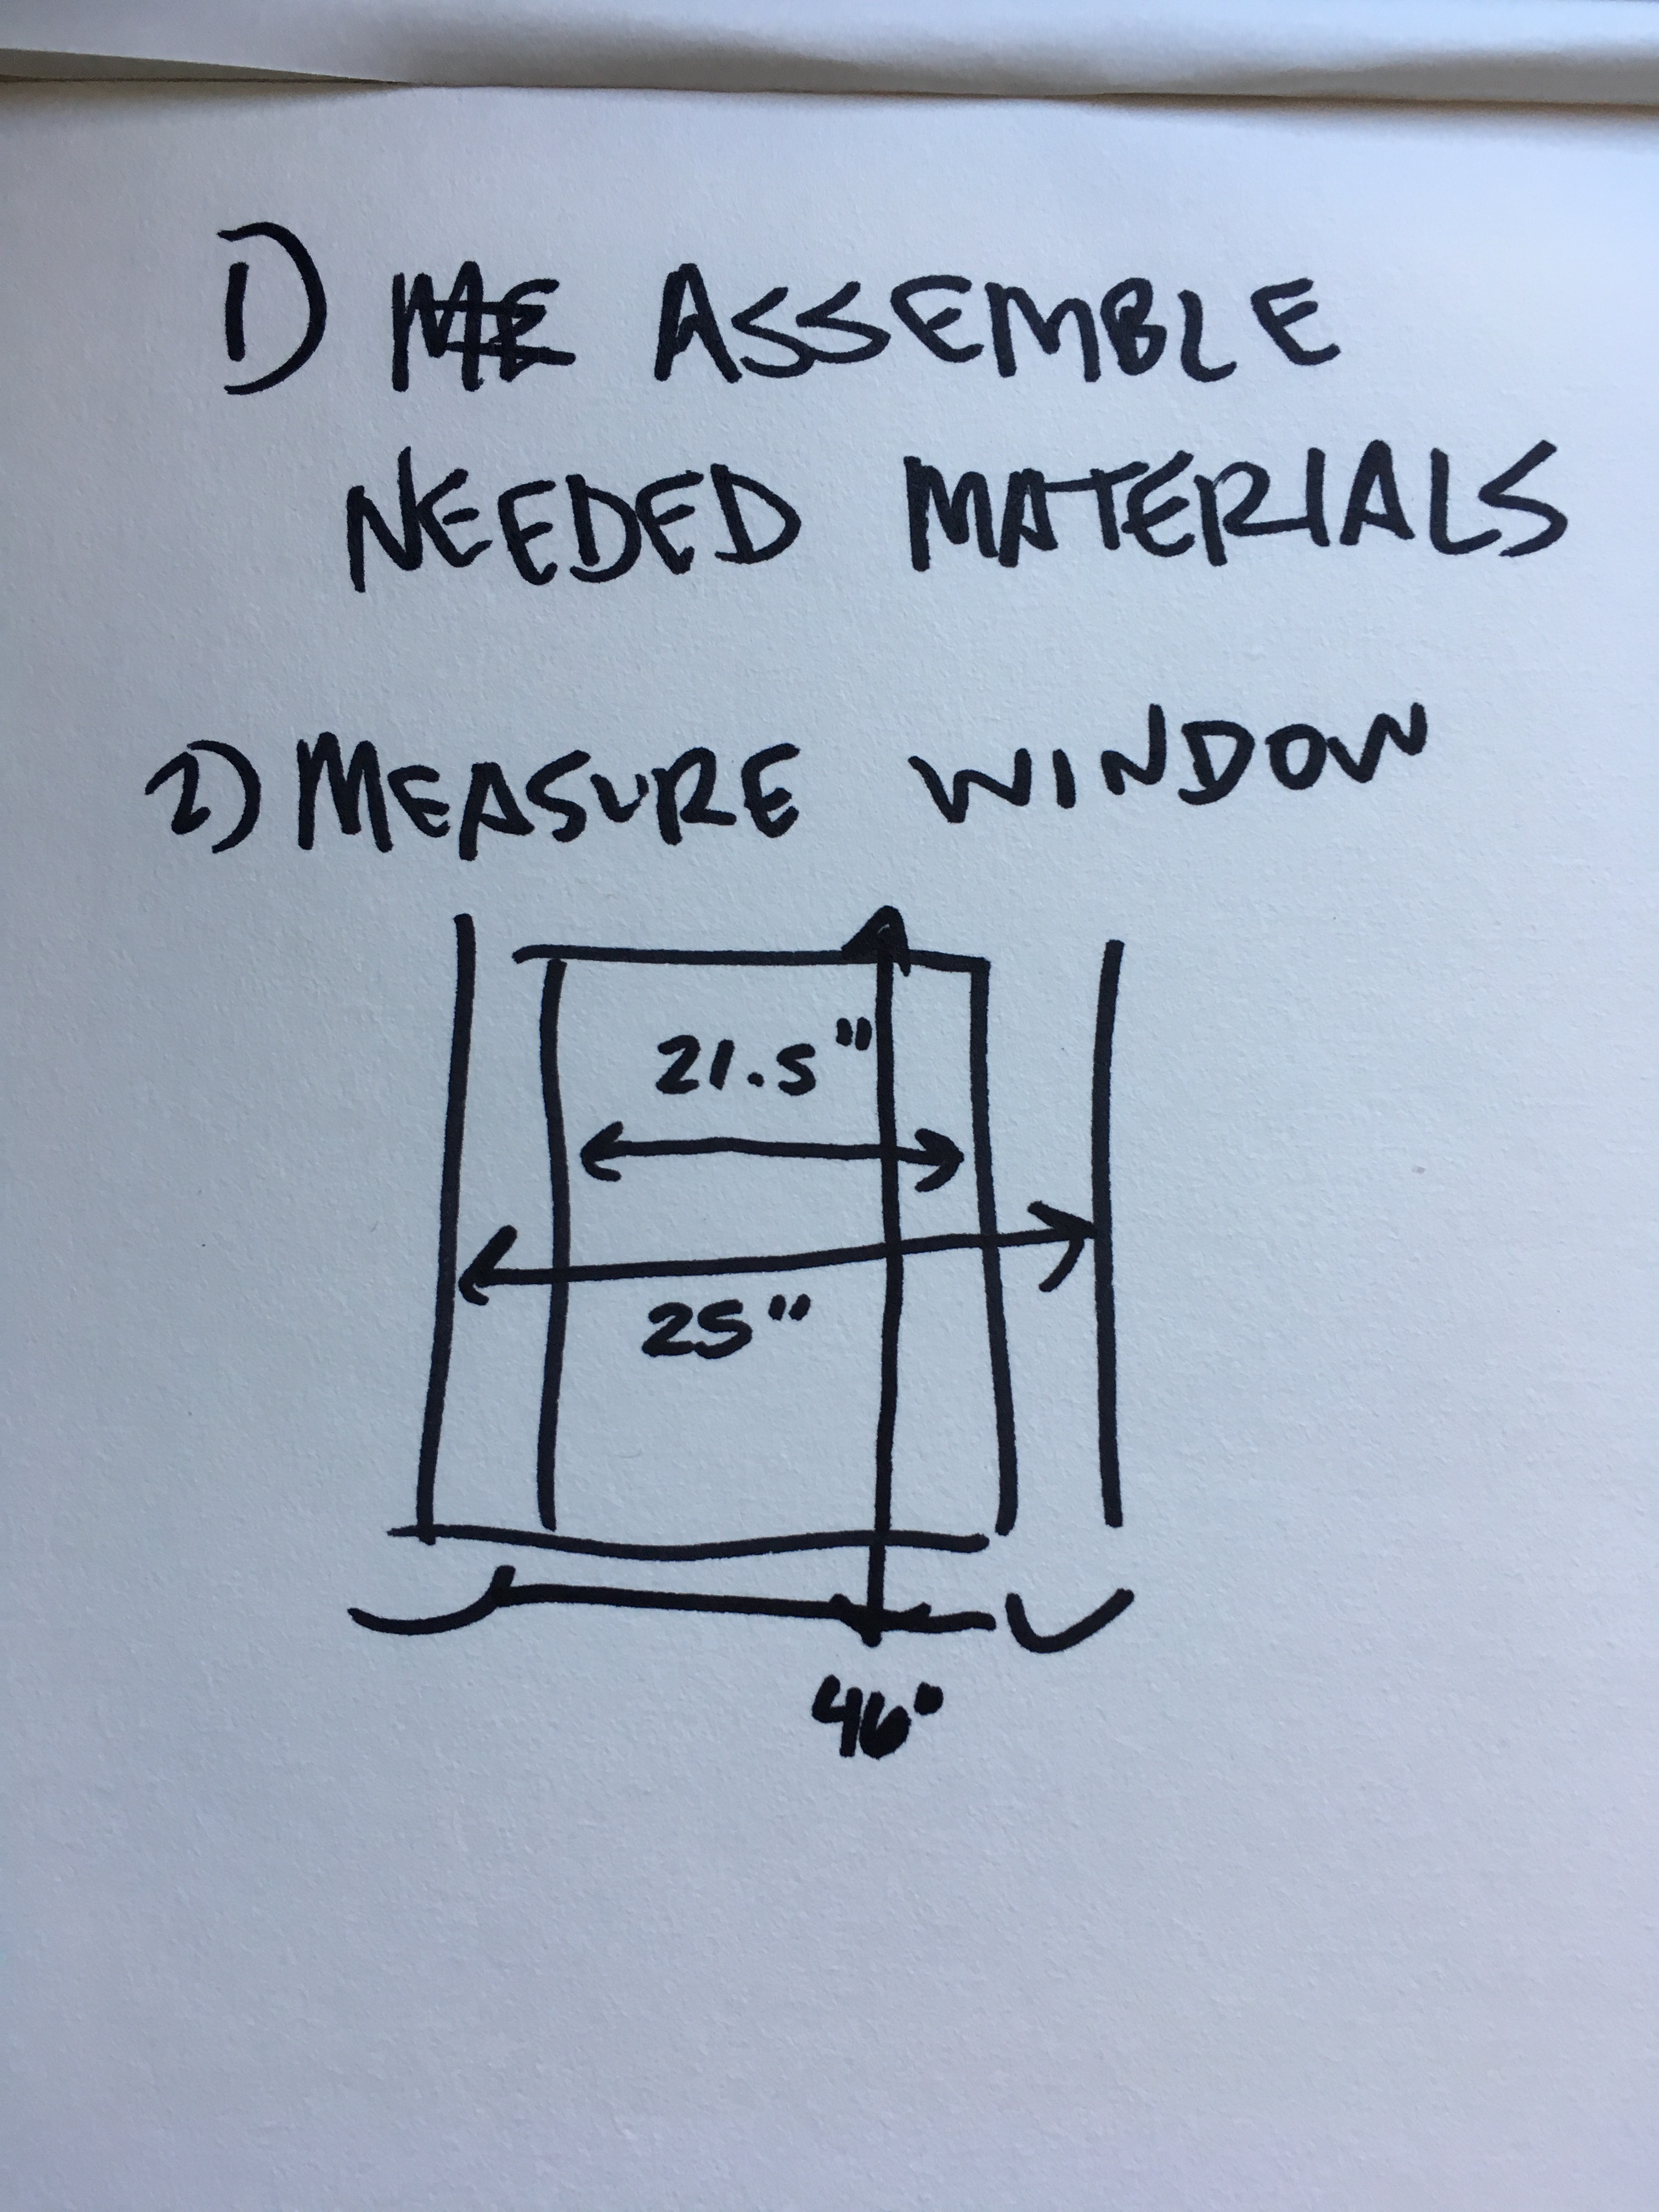 Picture of Measure Your Window